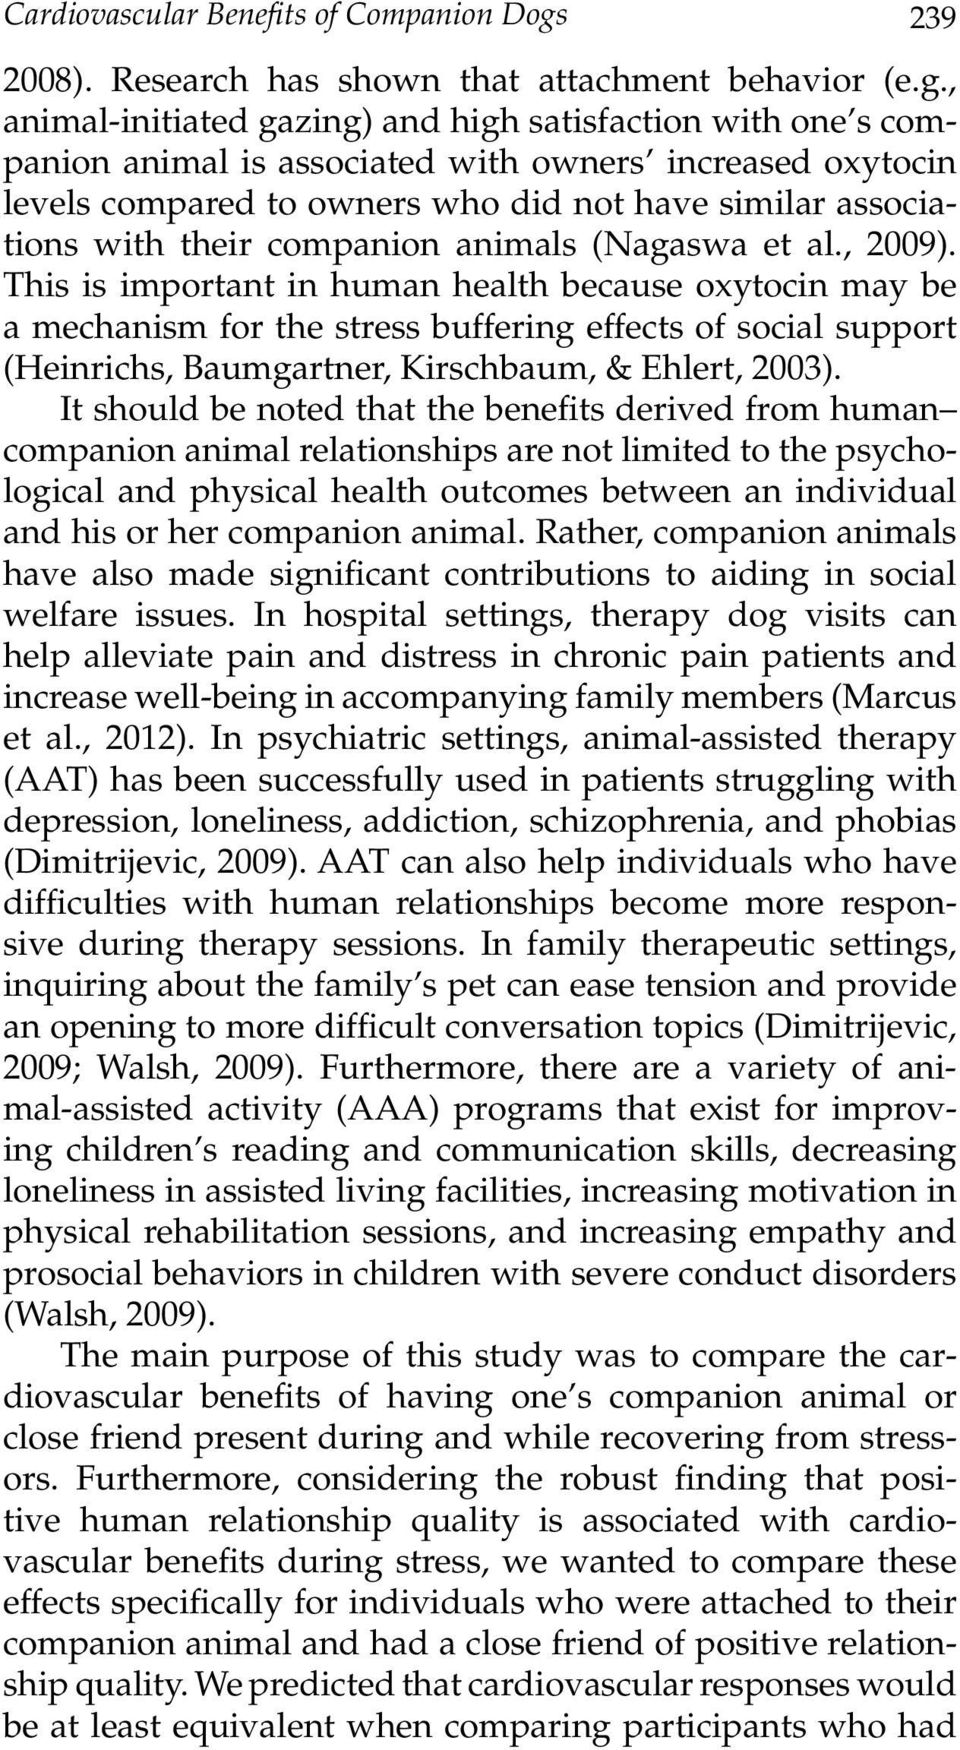 , animal-initiated gazing) and high satisfaction with one s companion animal is associated with owners increased oxytocin levels compared to owners who did not have similar associations with their